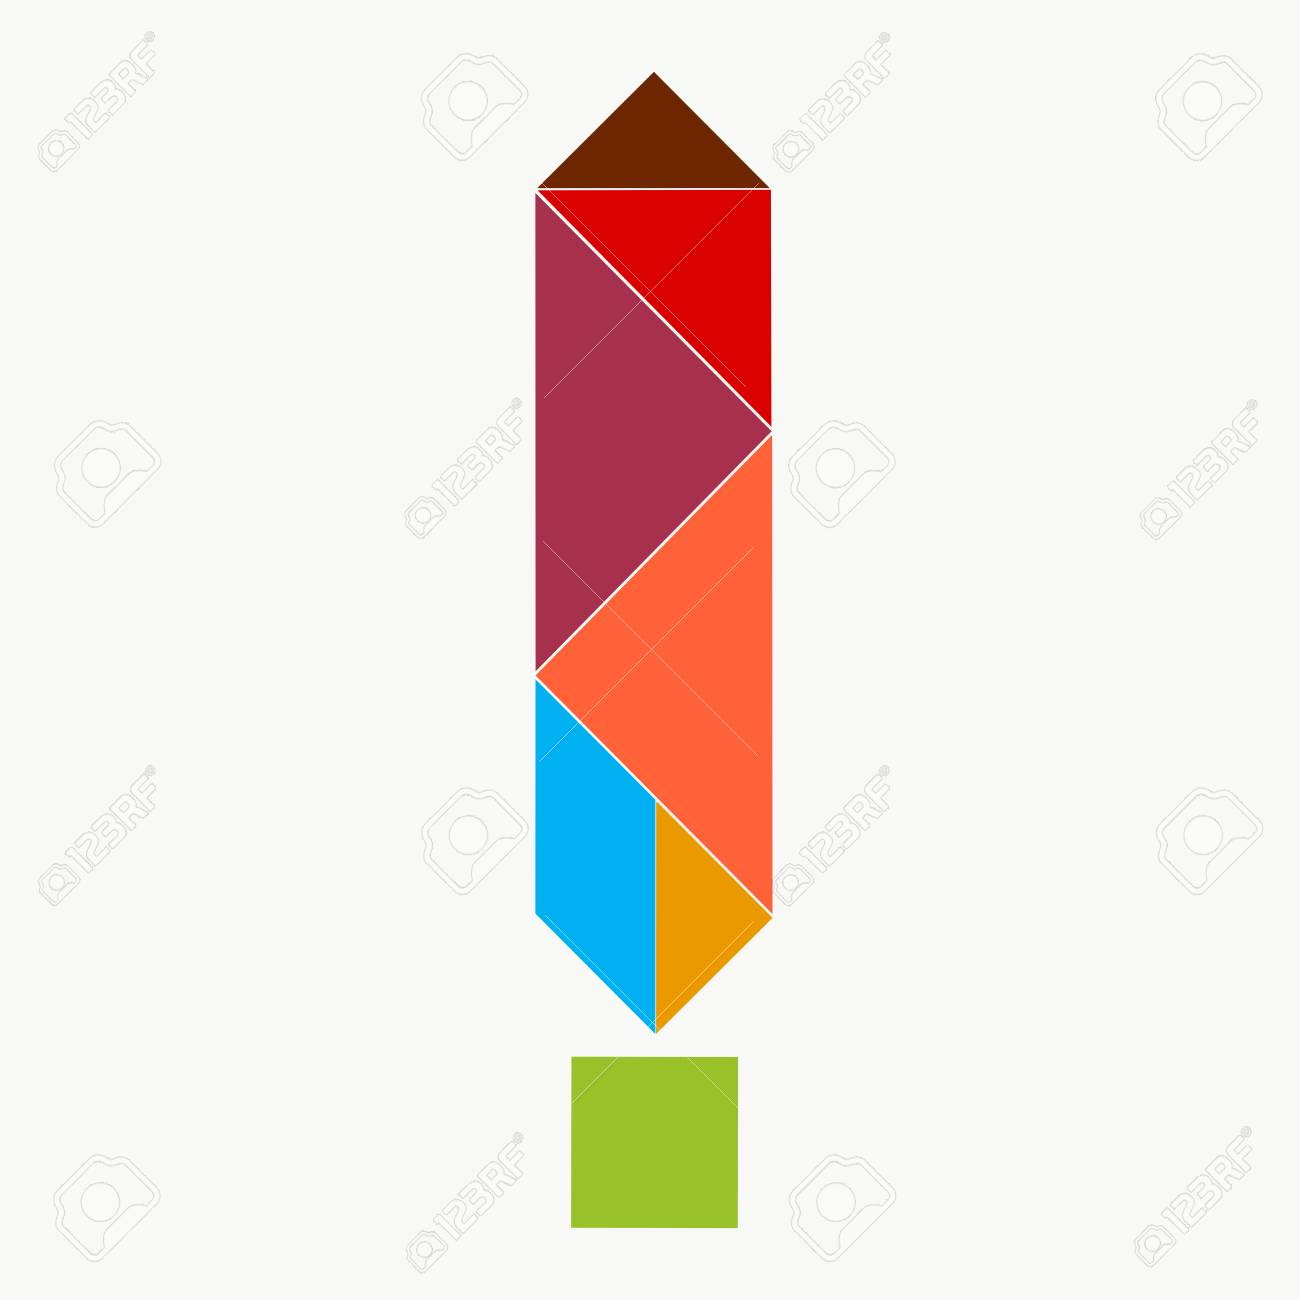 Exclamation Point From Pieces Of Tangram Puzzle intérieur Pièces Tangram